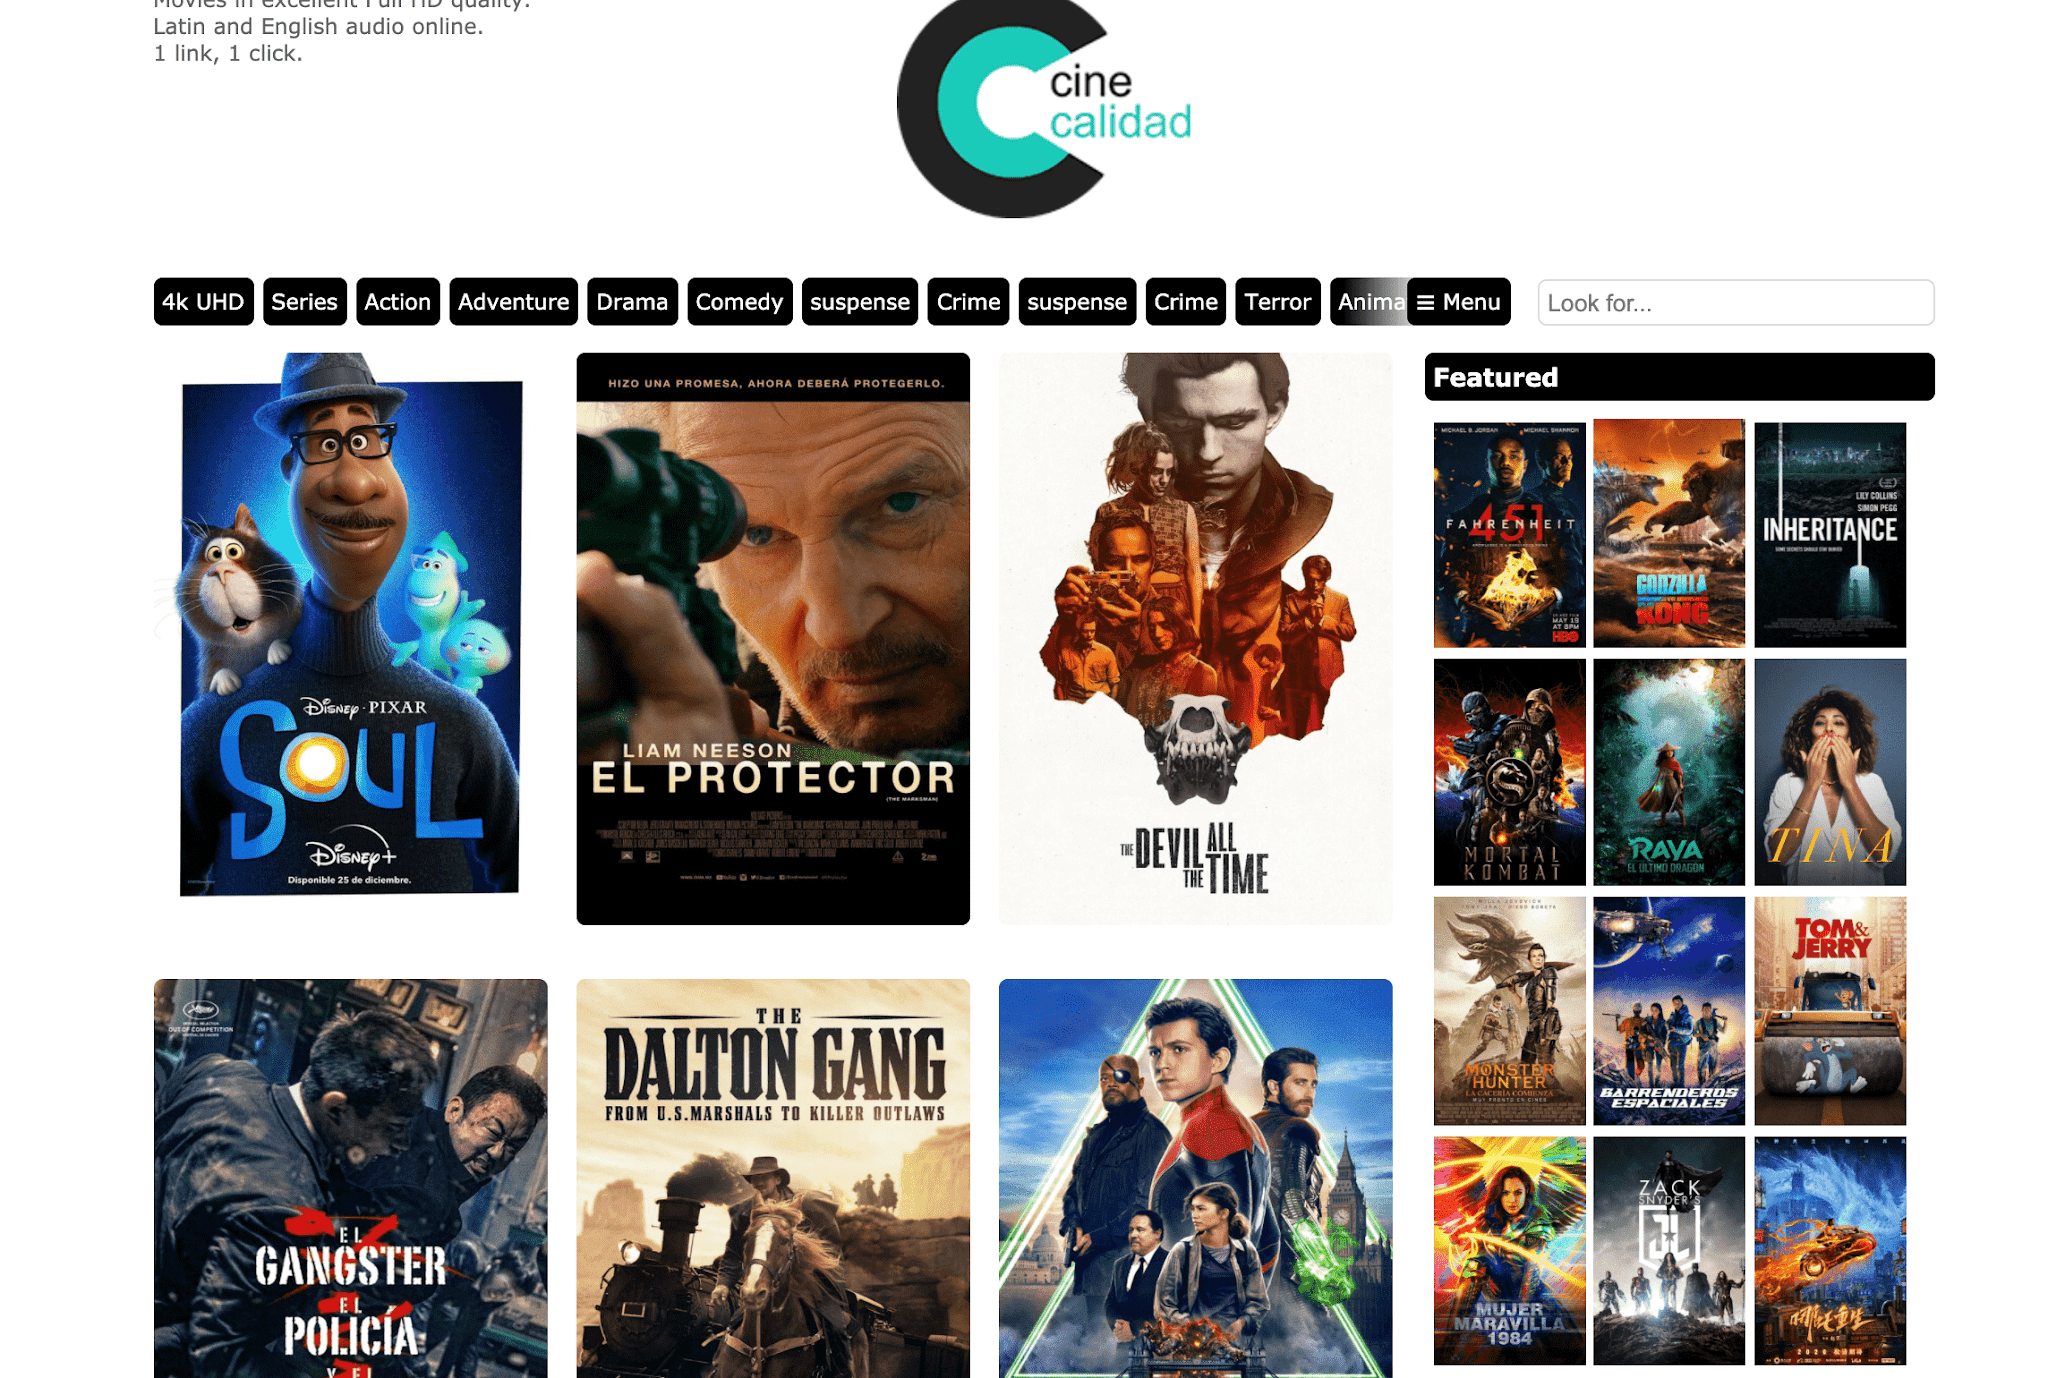 Cinecalidad website